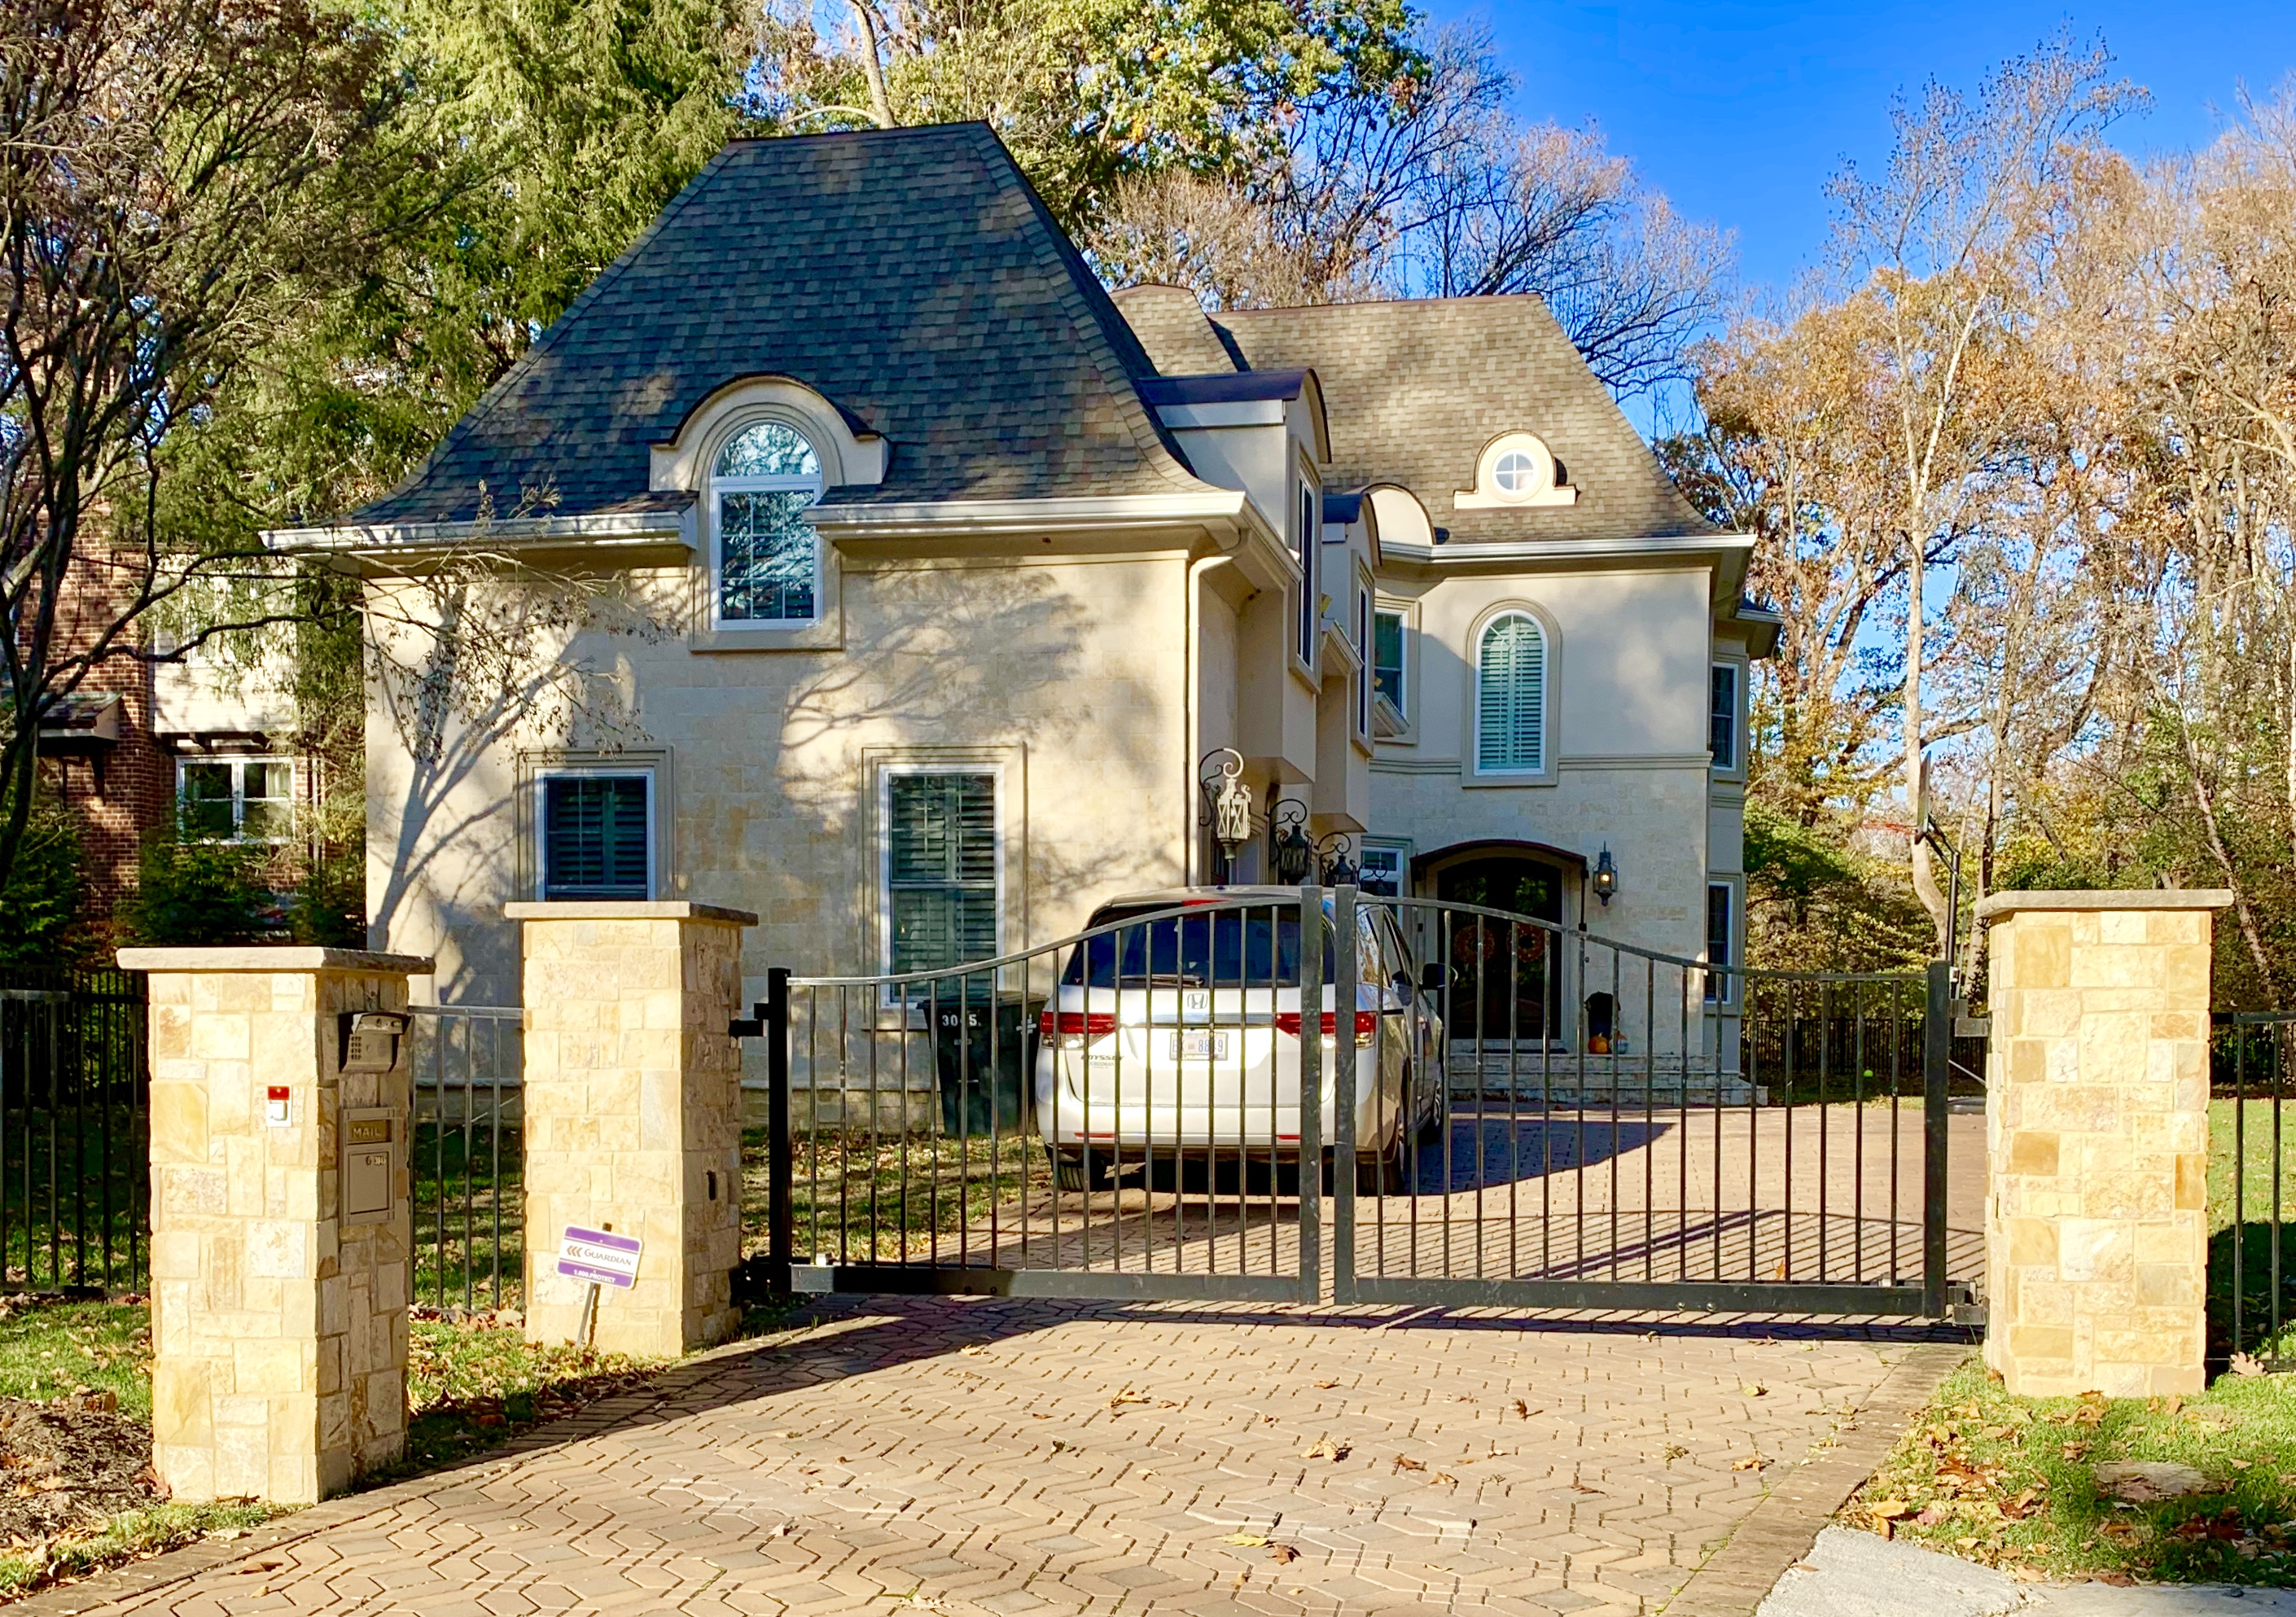 Washington, DC Detached Homes For Sale. 31st St in Barnaby Woods. Art Shmatko Luxury Real Estate Agent